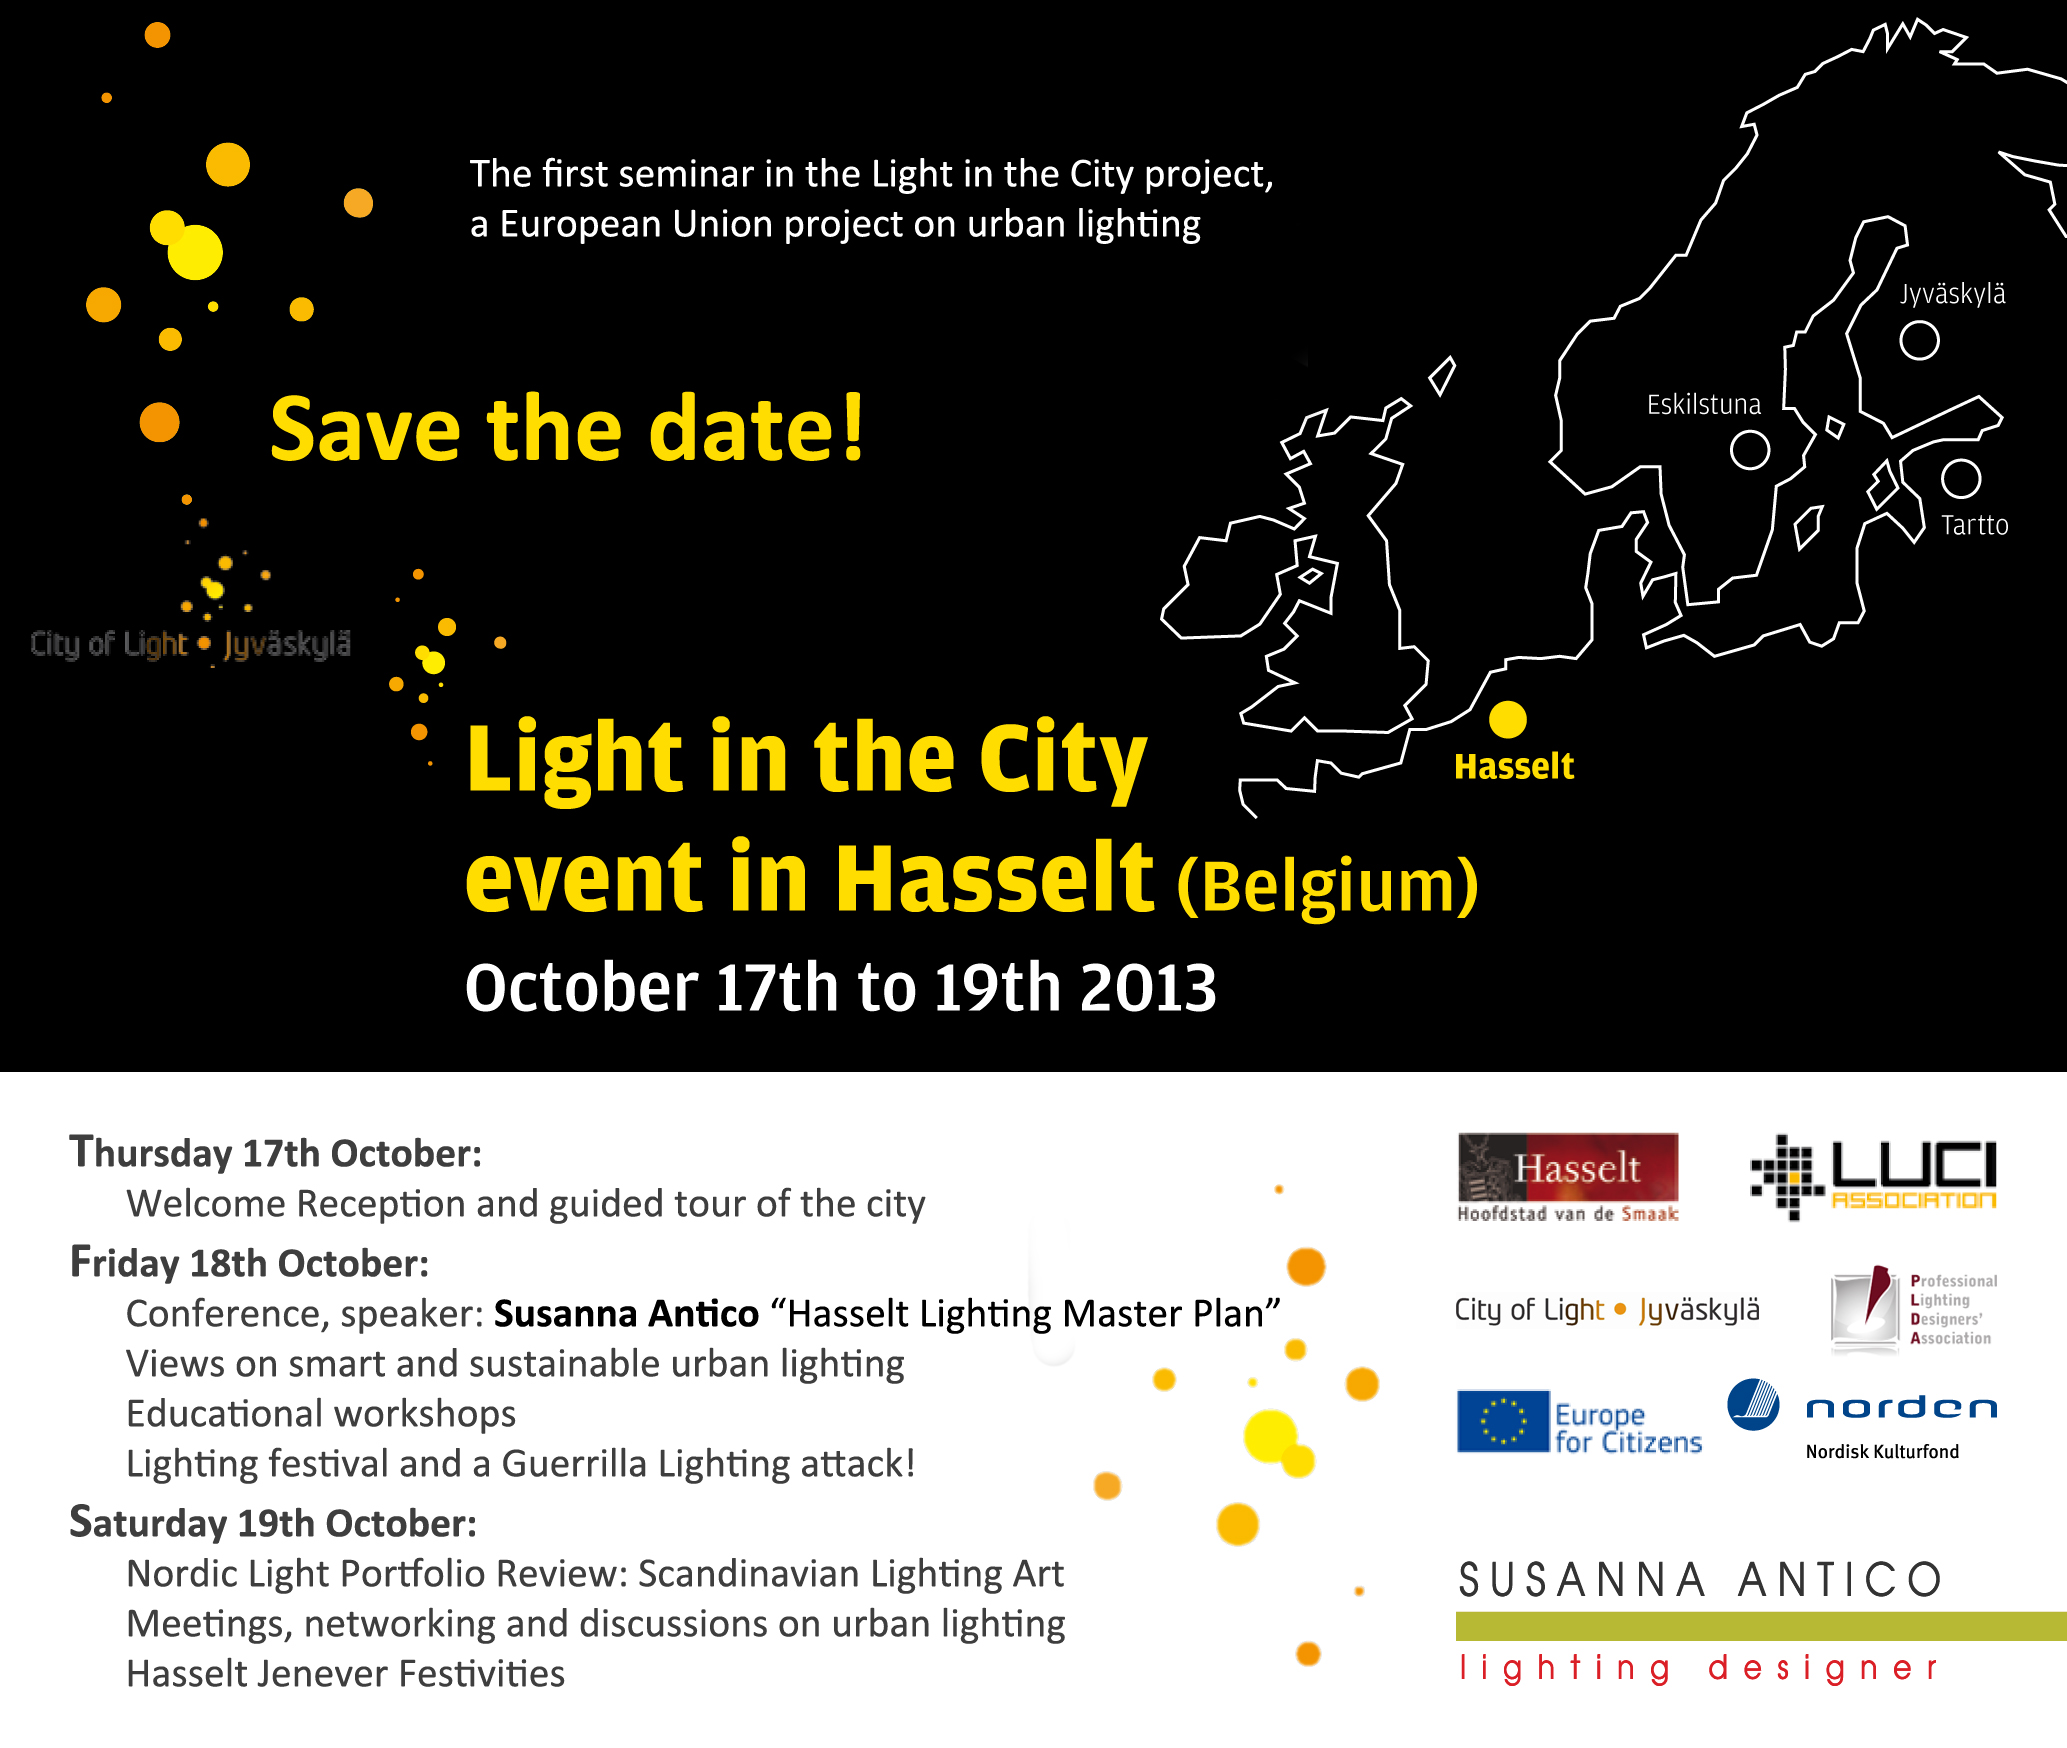 Light in the City - Event in Hasselt